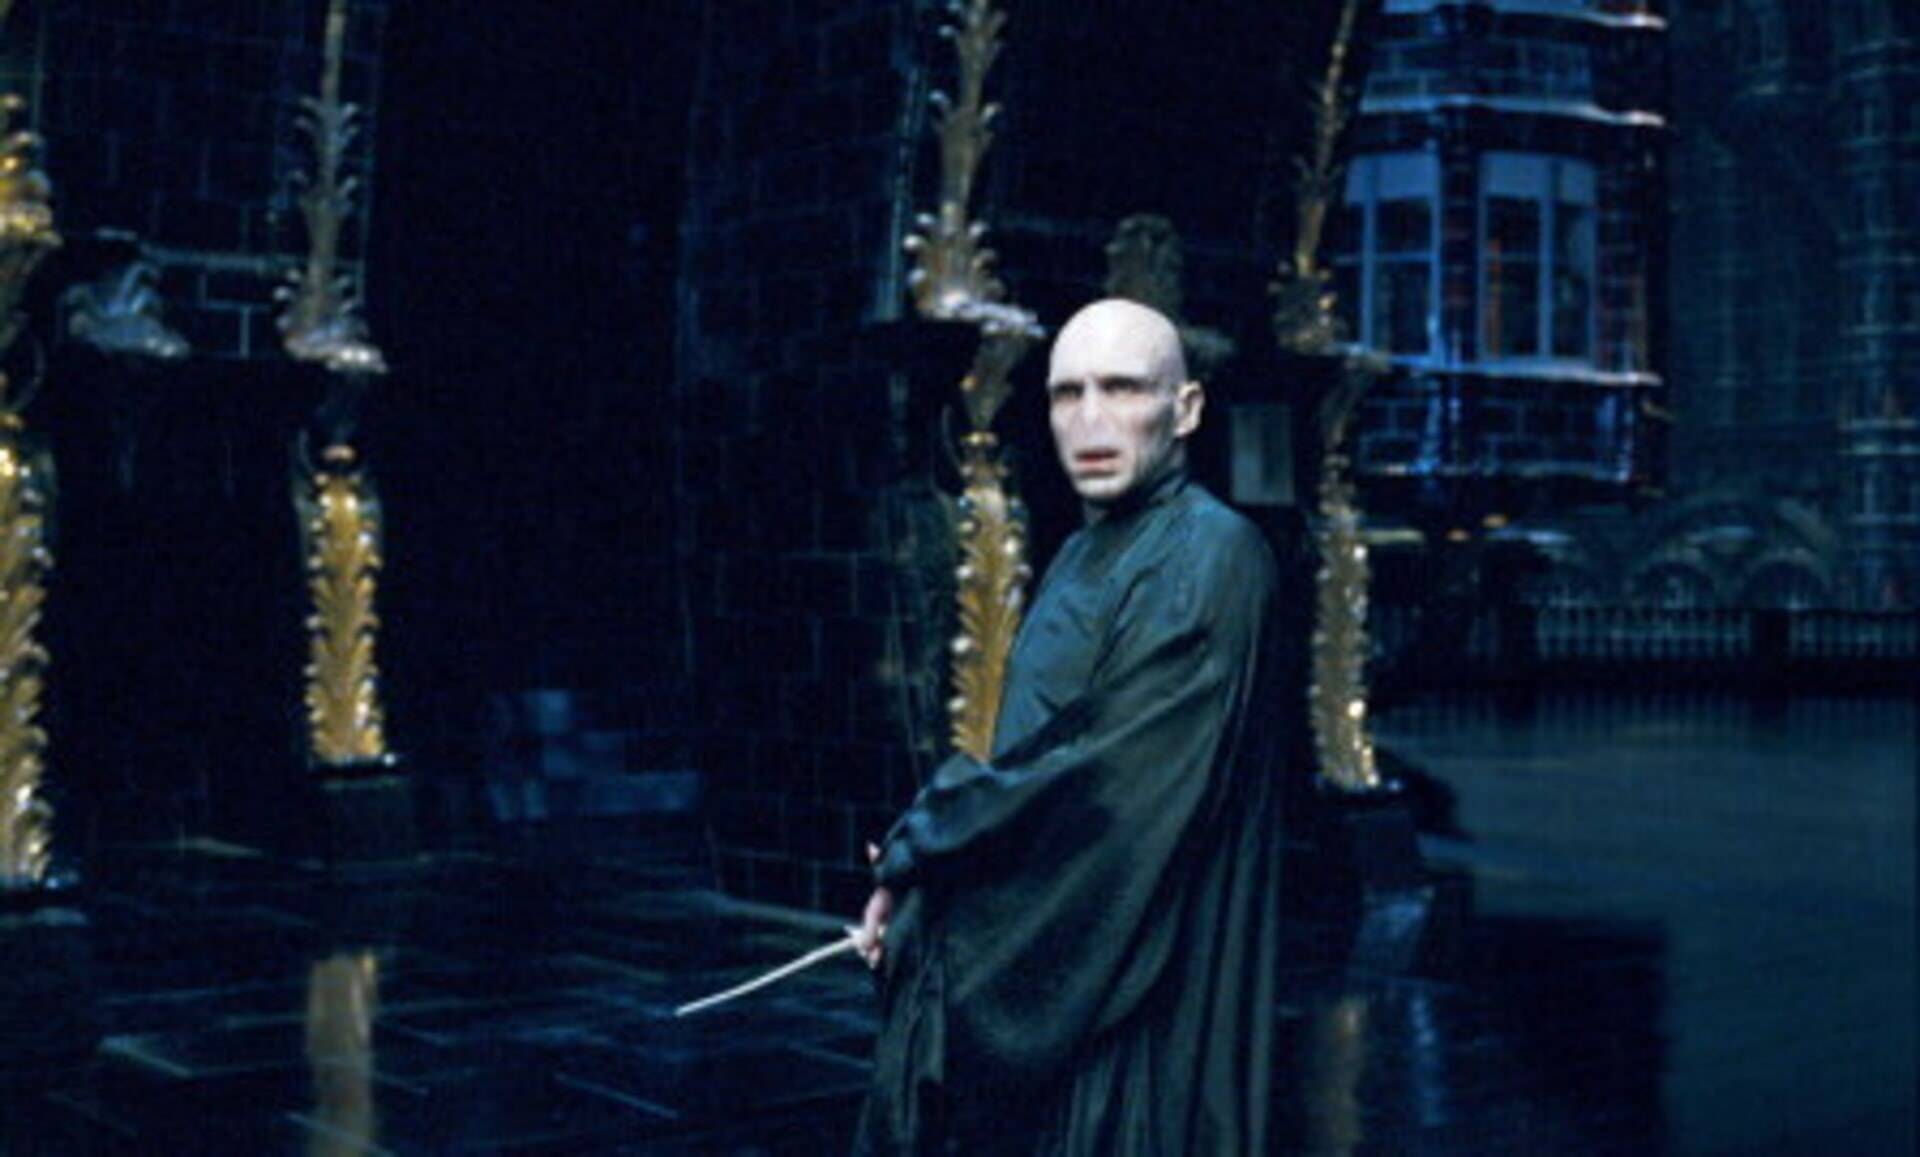 Harry Potter and the Order of the Phoenix - Image 7